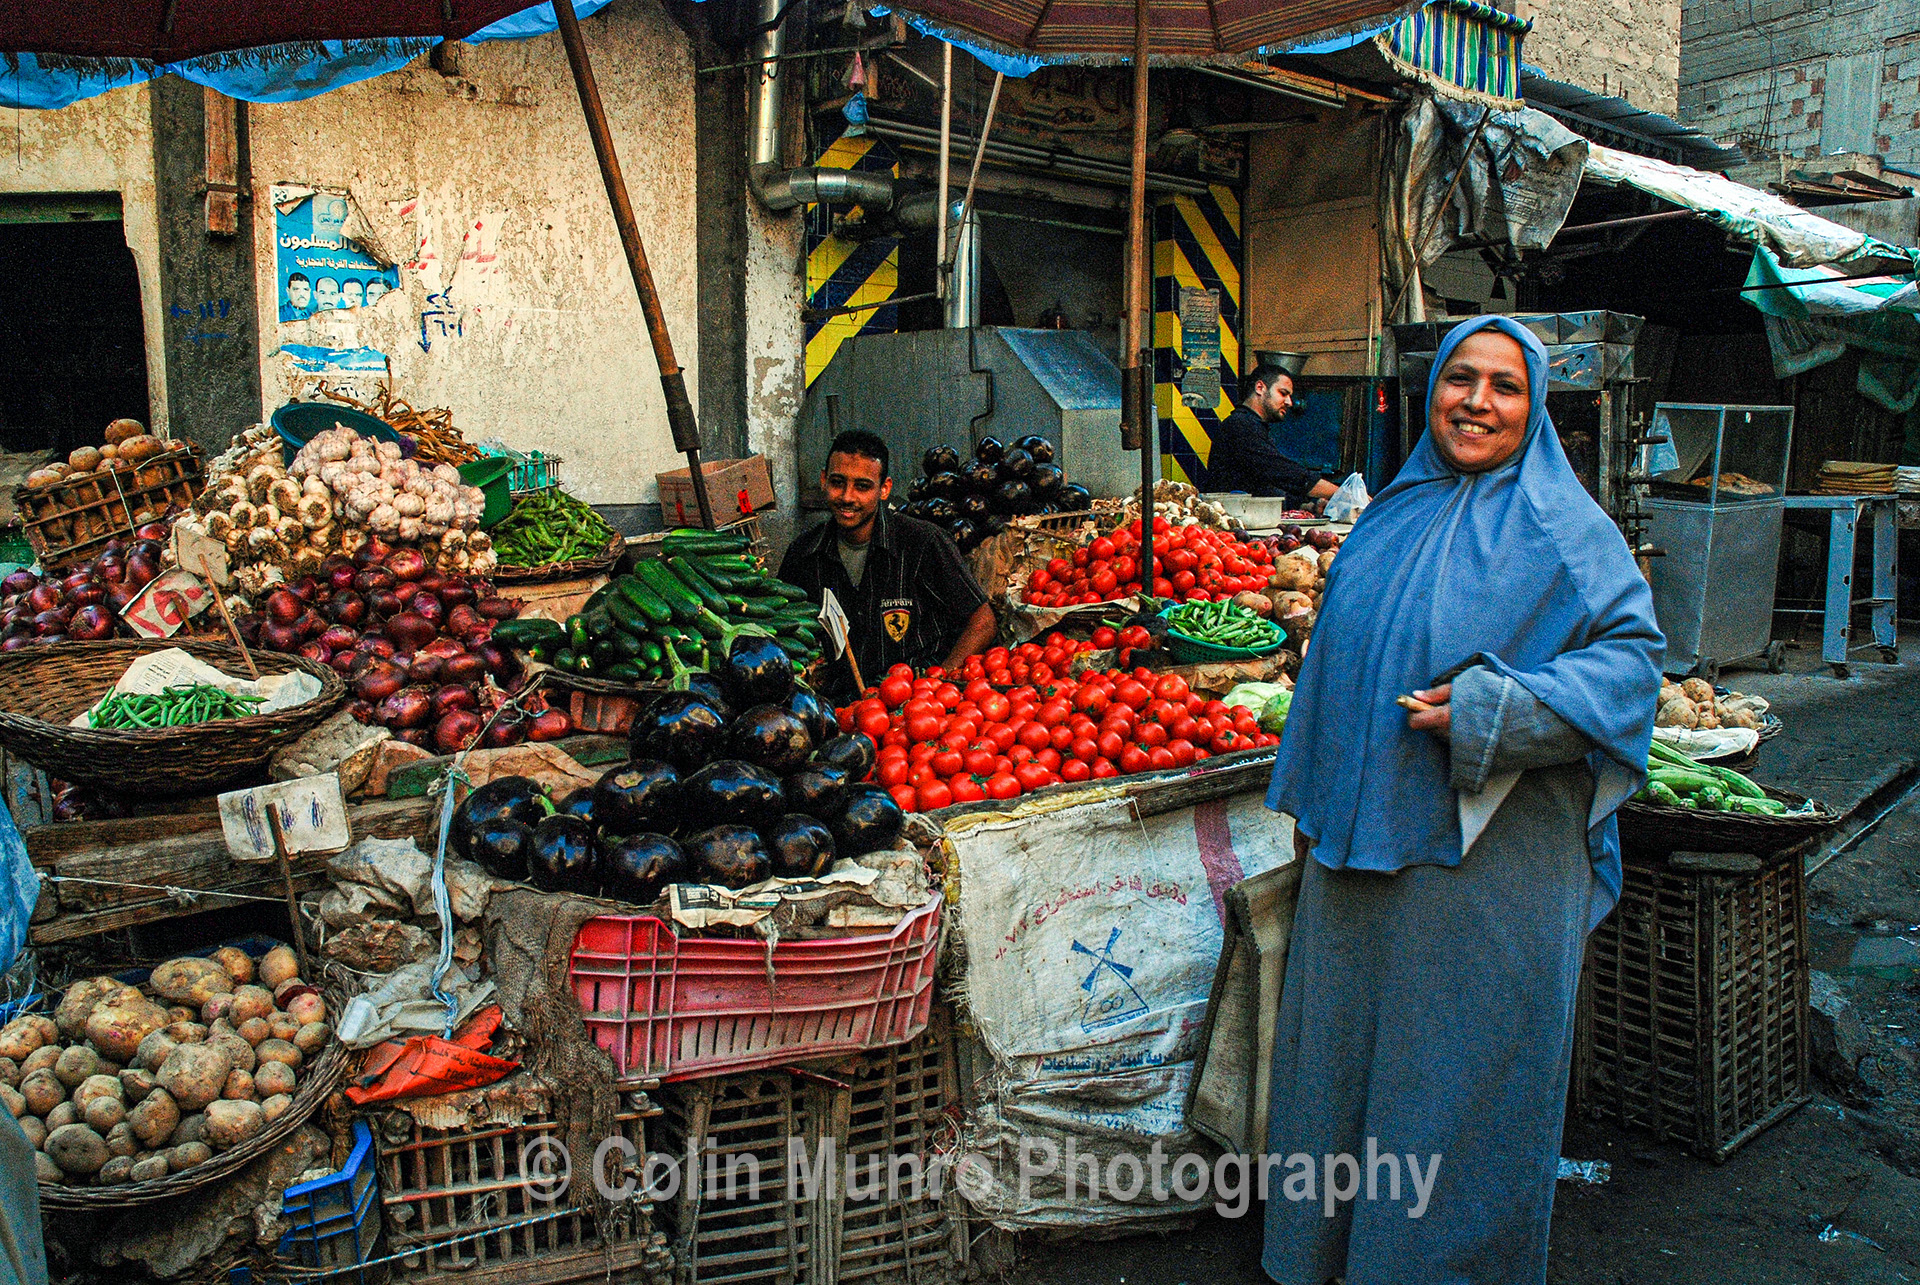 Vegetables on sale, Abu Qir market stalls.